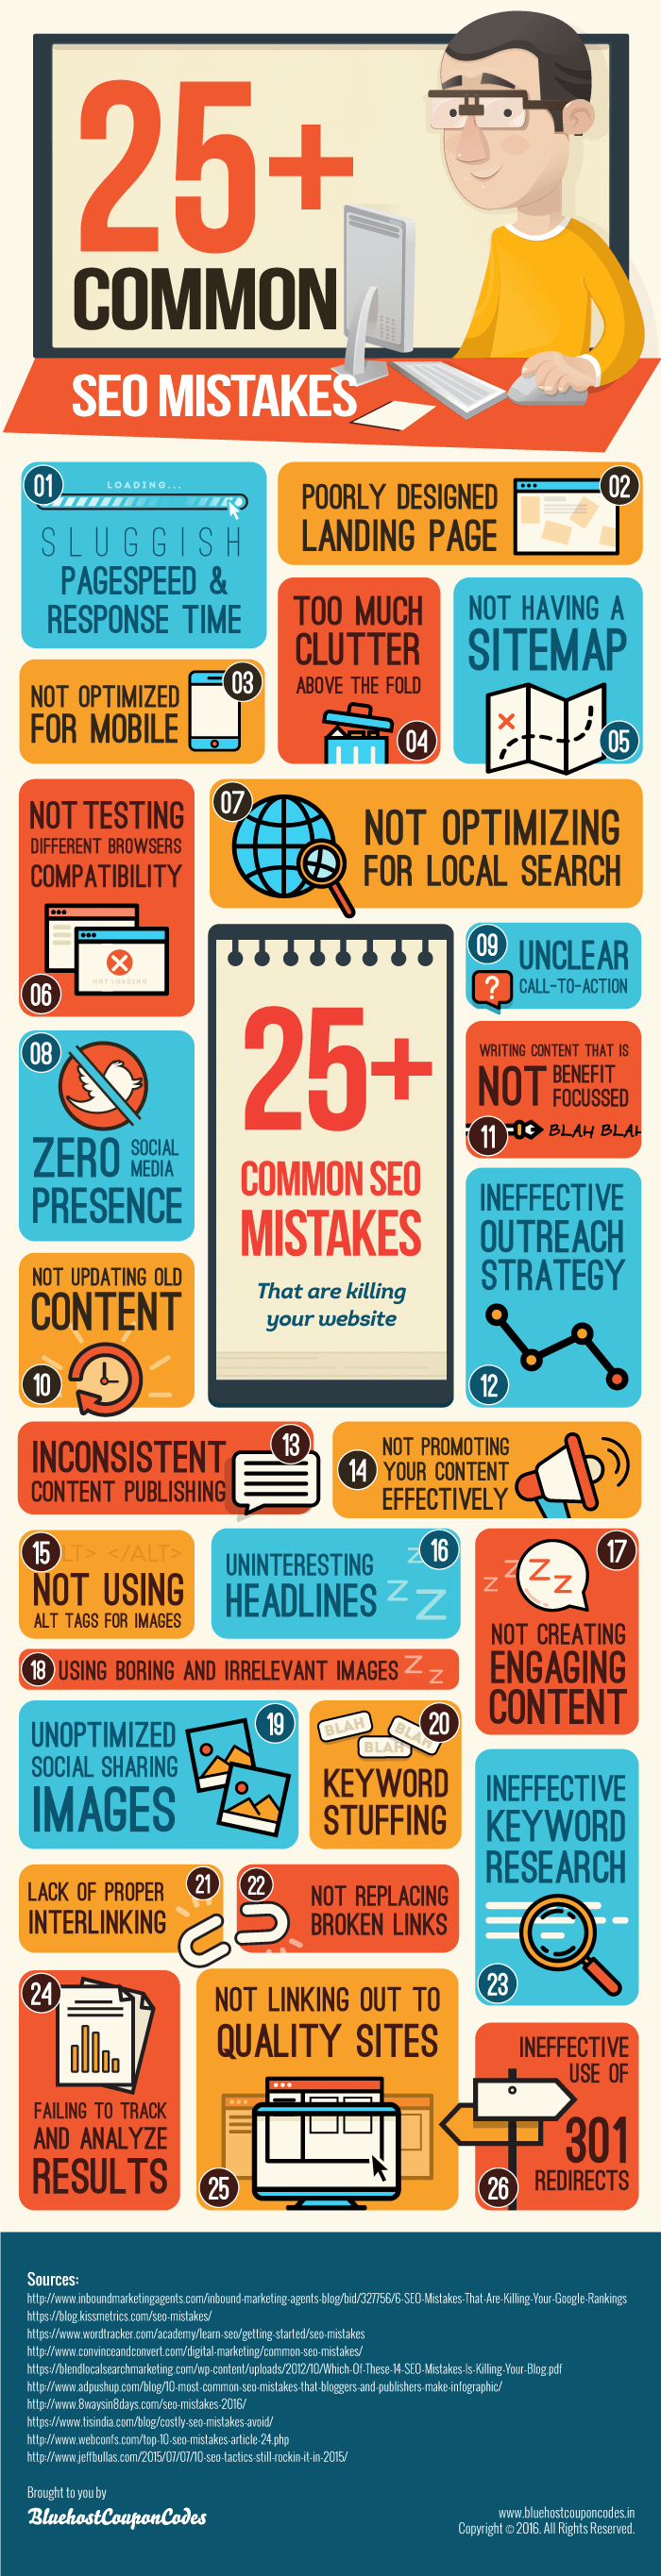 26 Common SEO Mistakes That Are Killing Your Website [Infographic] | Social Media Today